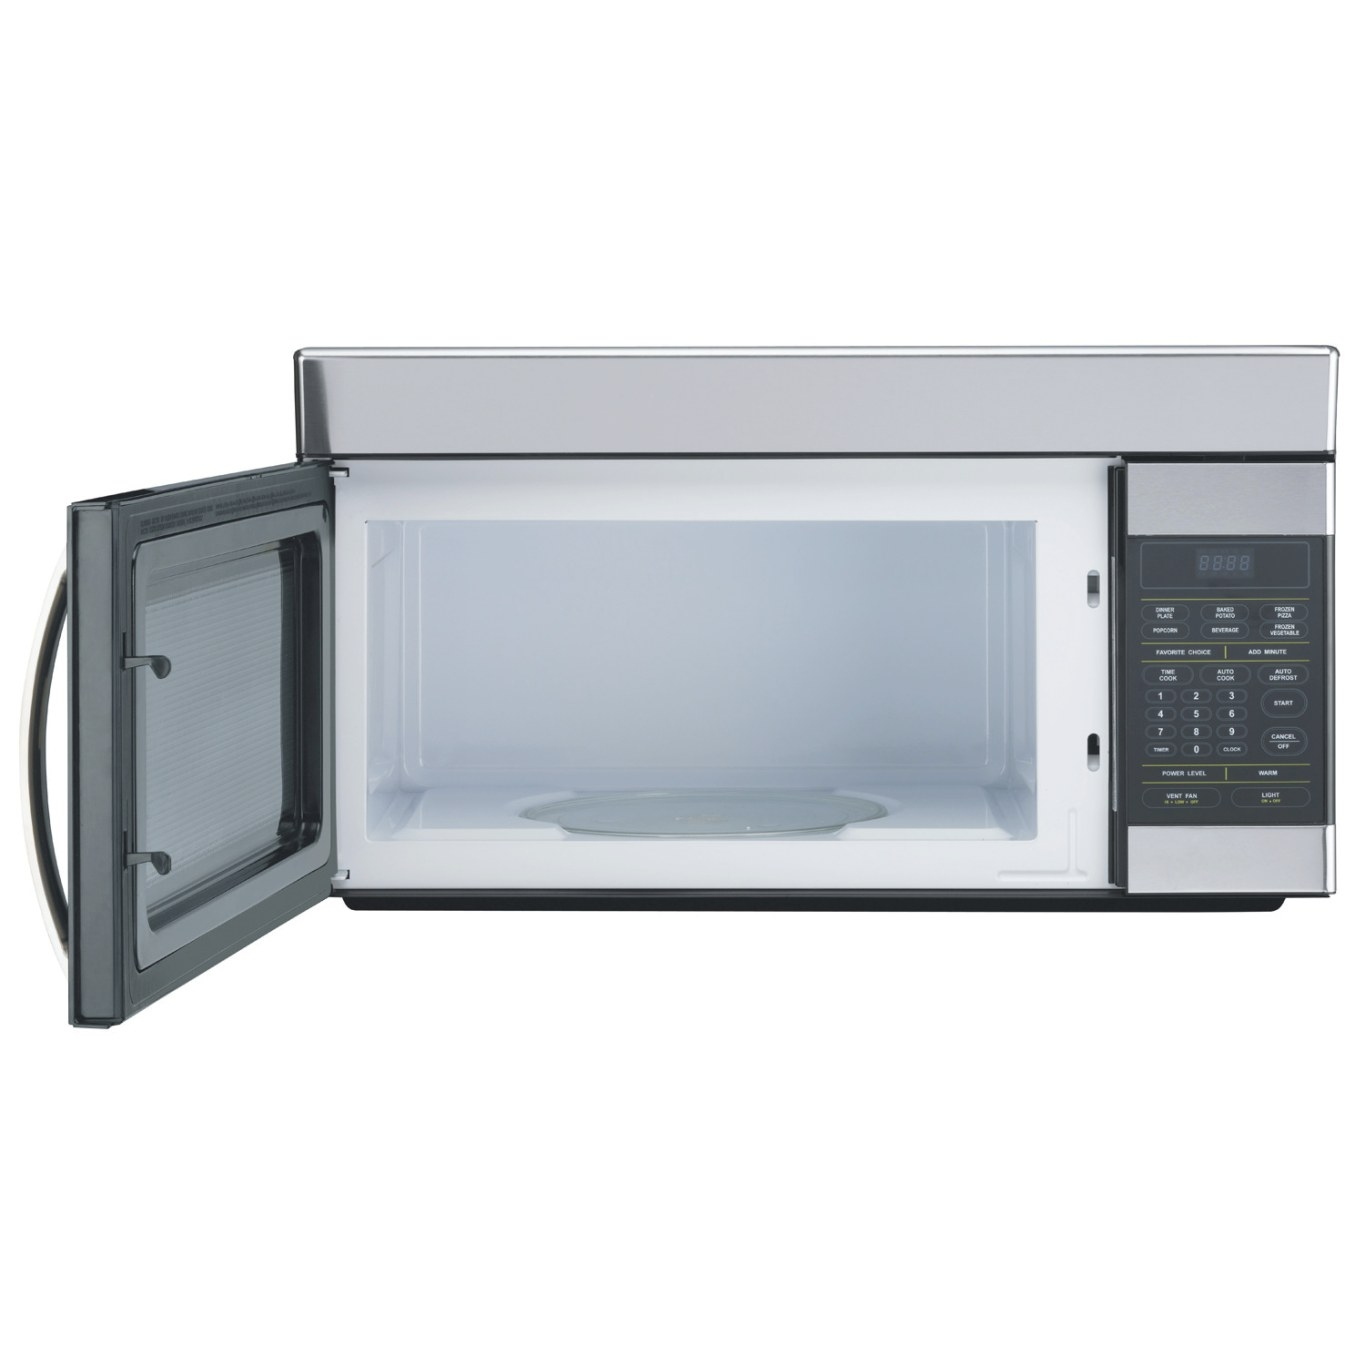 1.6 Cu. Ft. Over-The-Range Microwave Oven - Microwaves inside Low Profile Over The Range Microwave